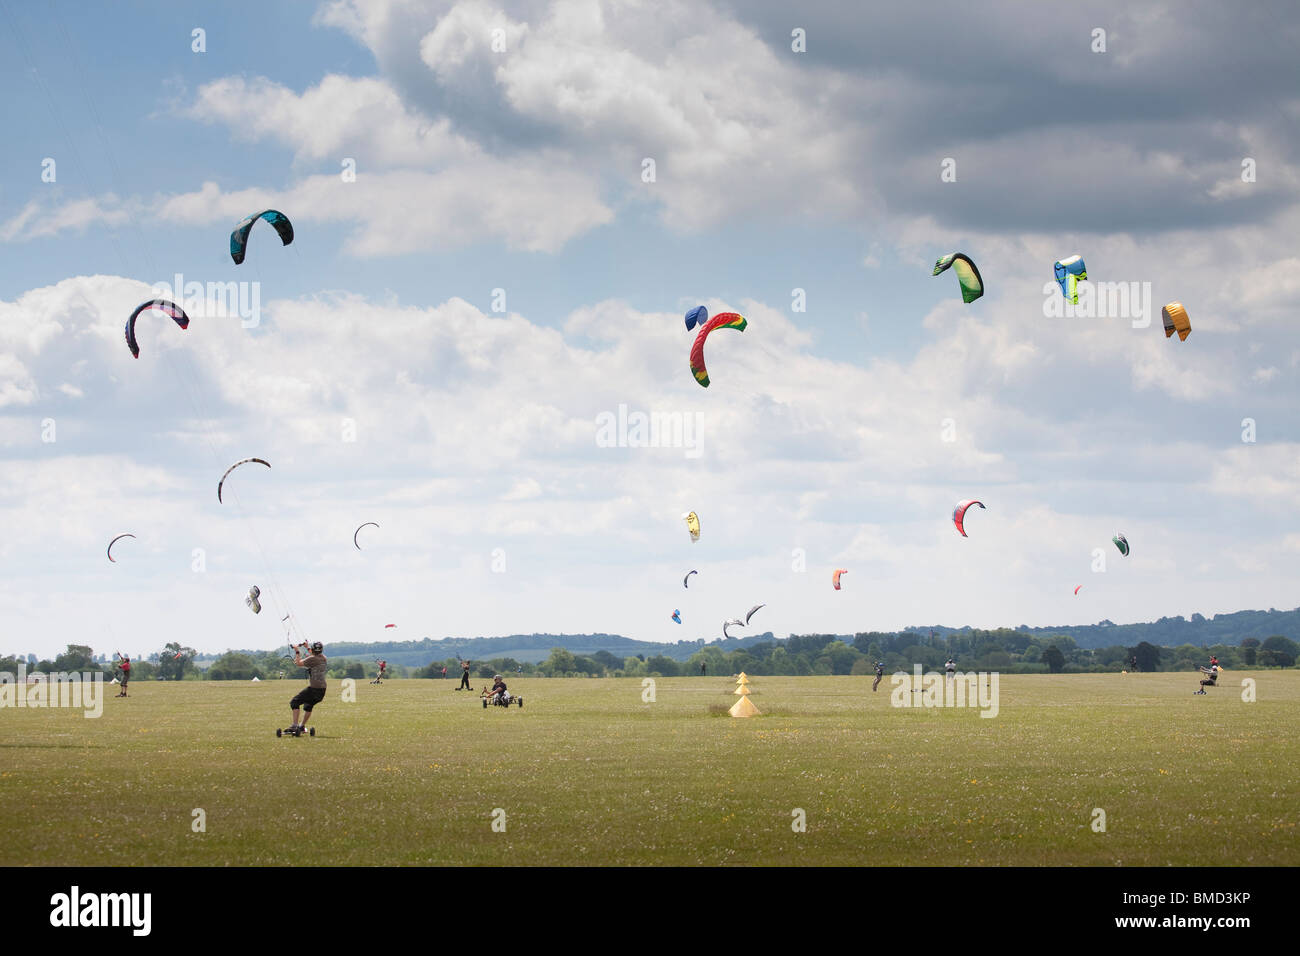 Middle Wallop Kite festival 2010, Kite landboarding and buggying on airfield on summers day - Stock Image